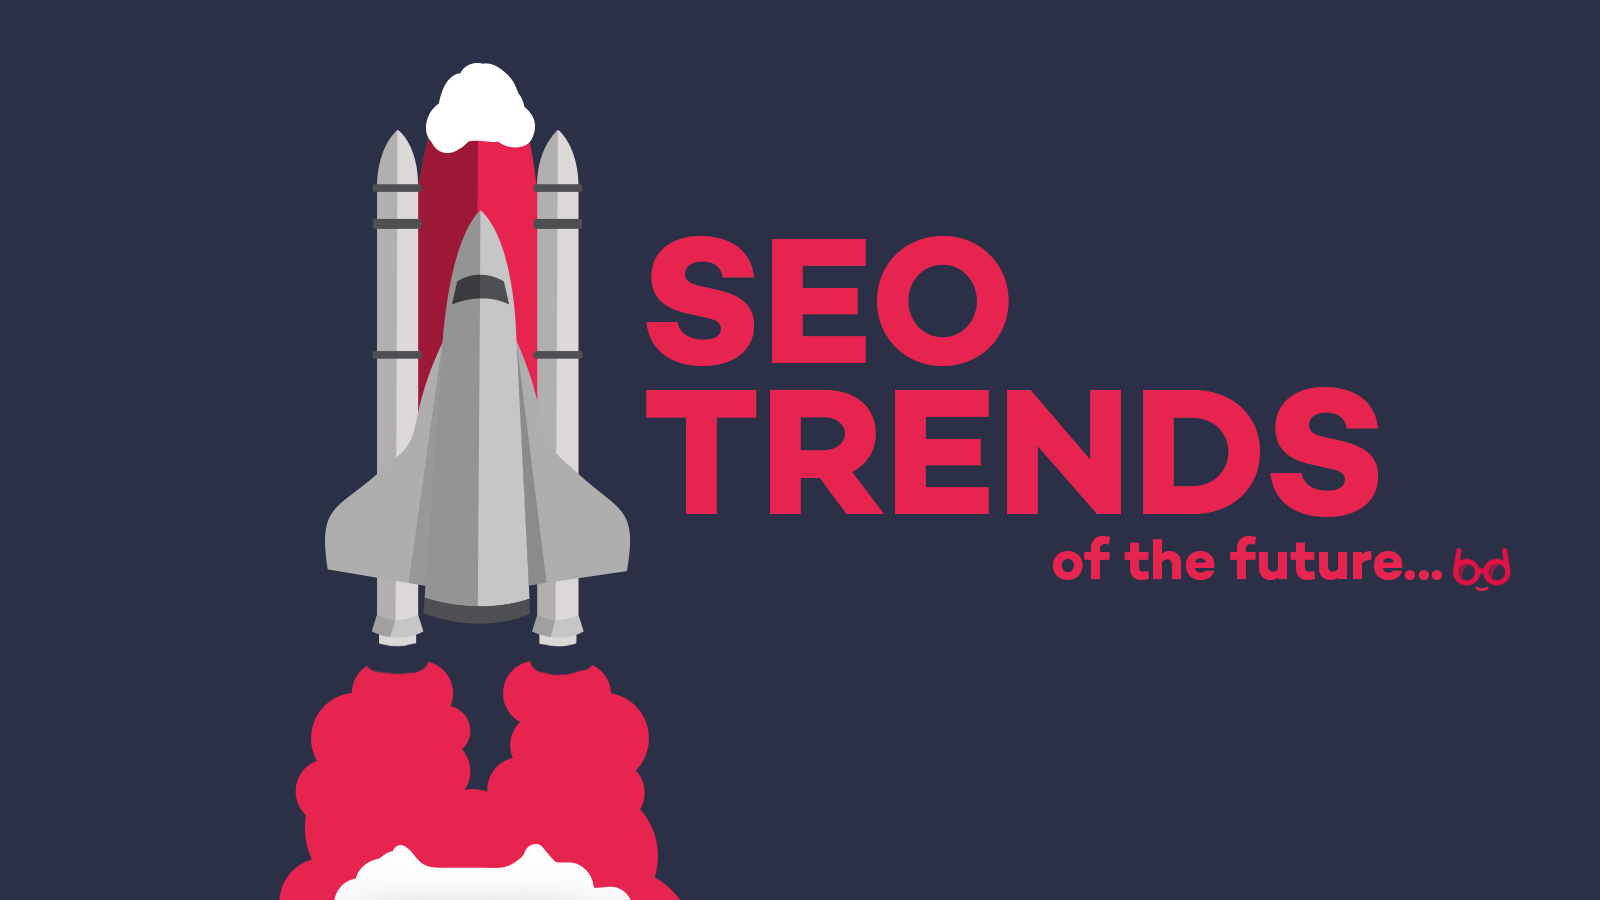 Hot SEO trends for 2018